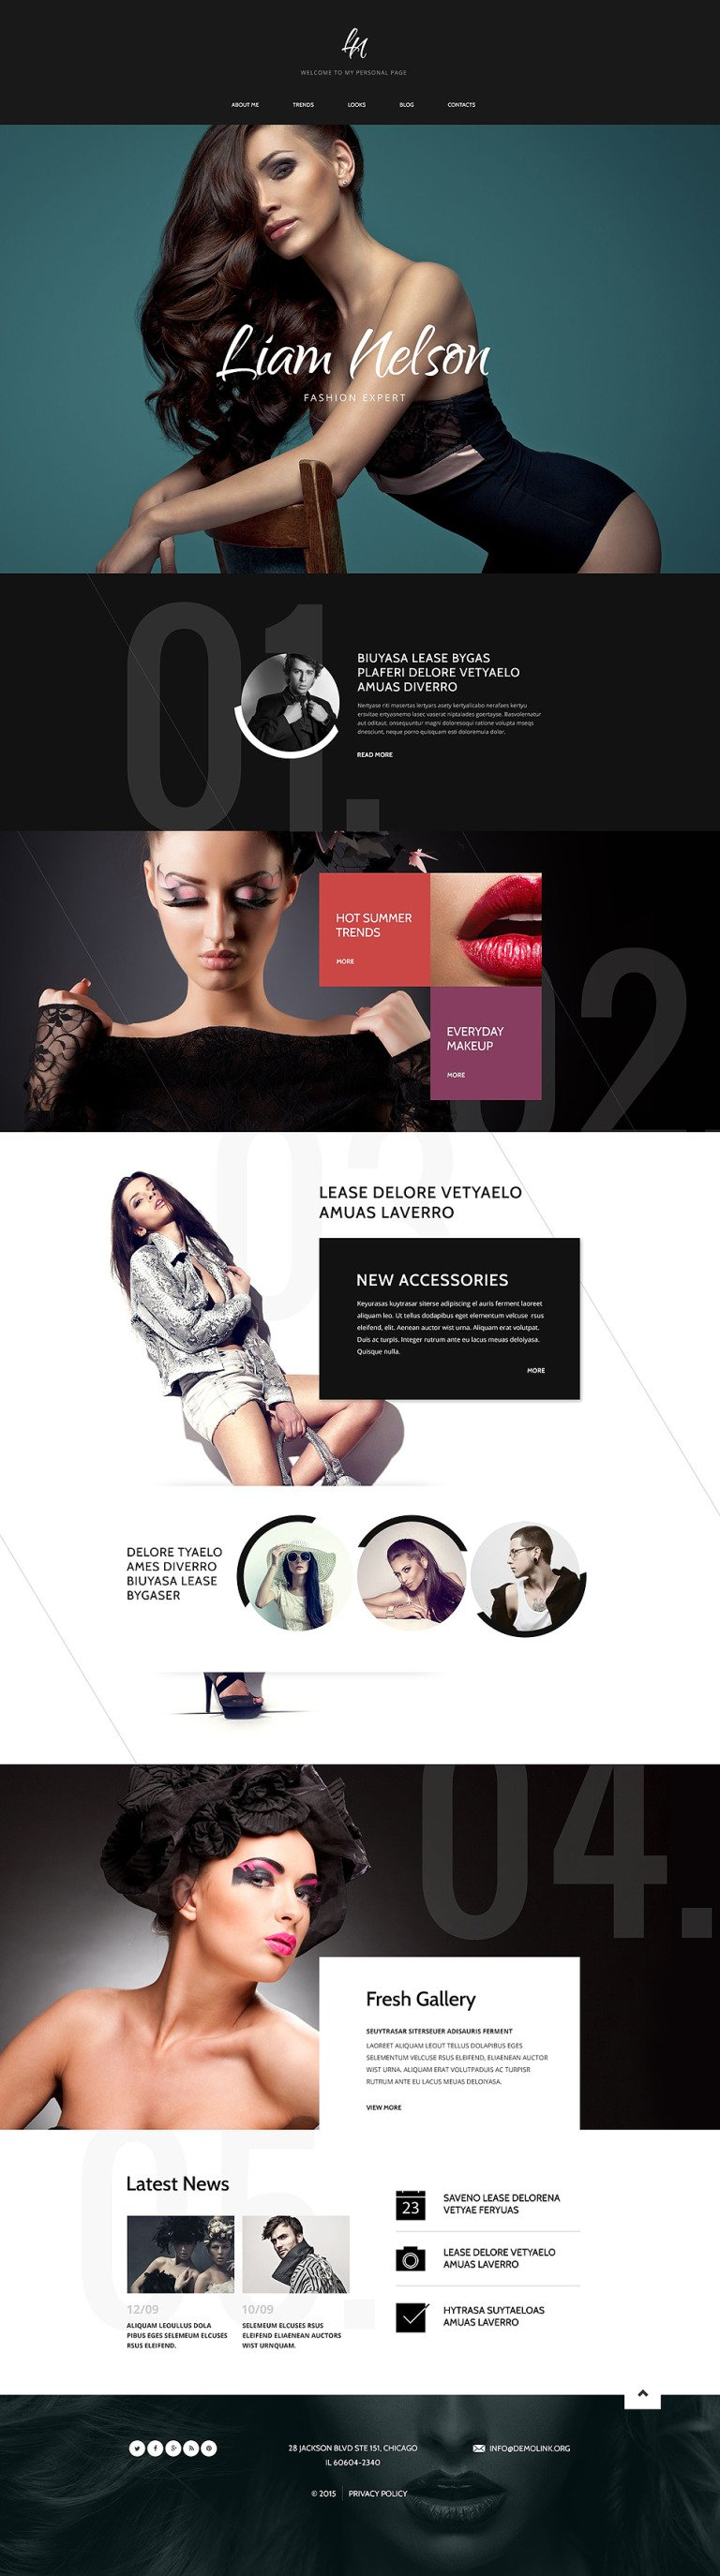 Fashion Expert Drupal Template New Screenshots BIG